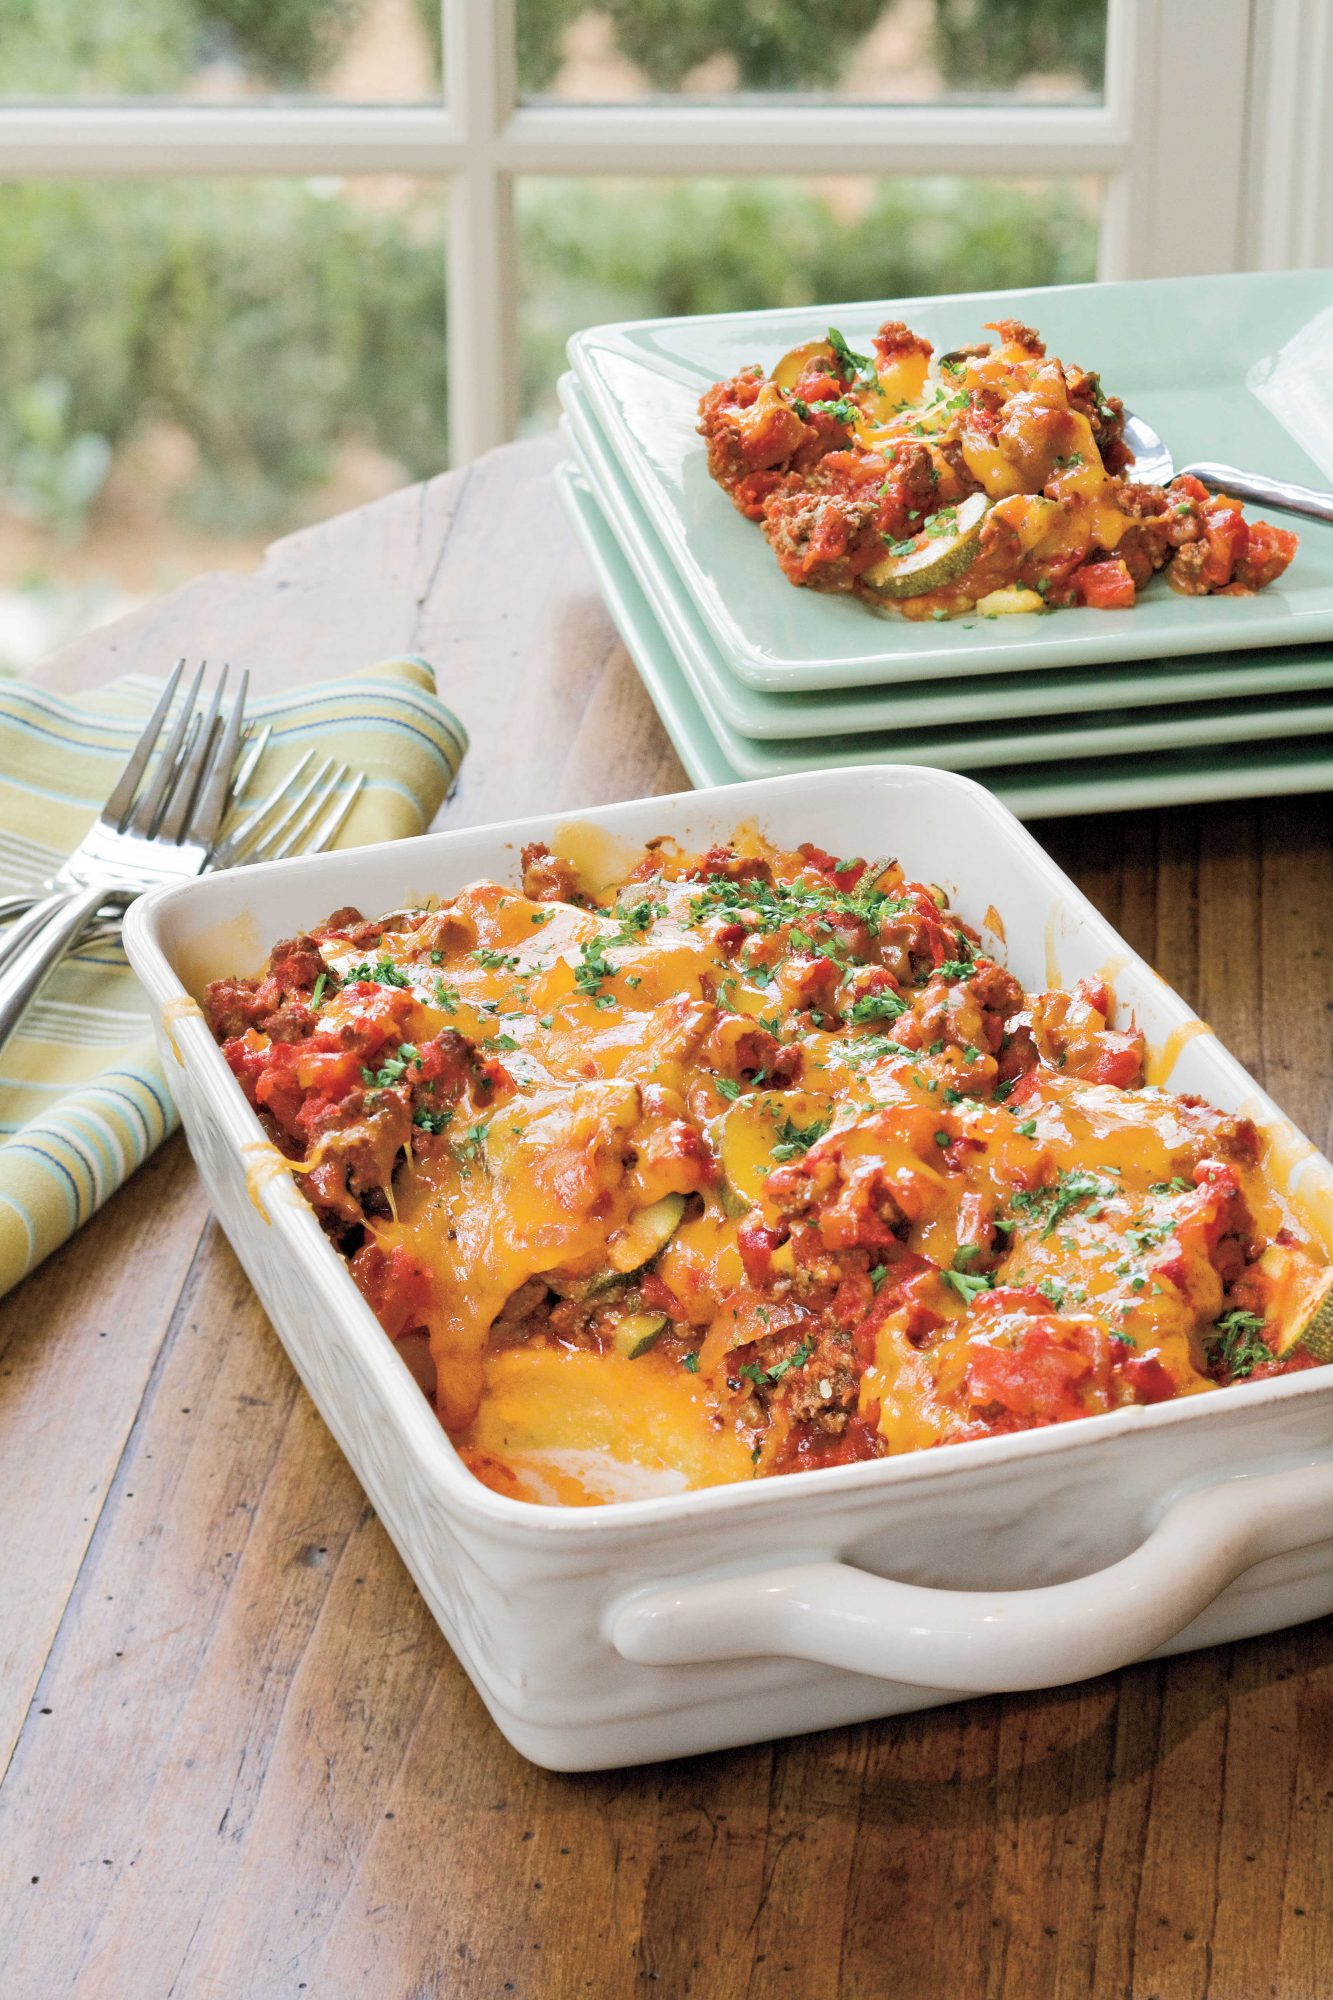 Tomato 'n' Beef Casserole with Polenta Crust